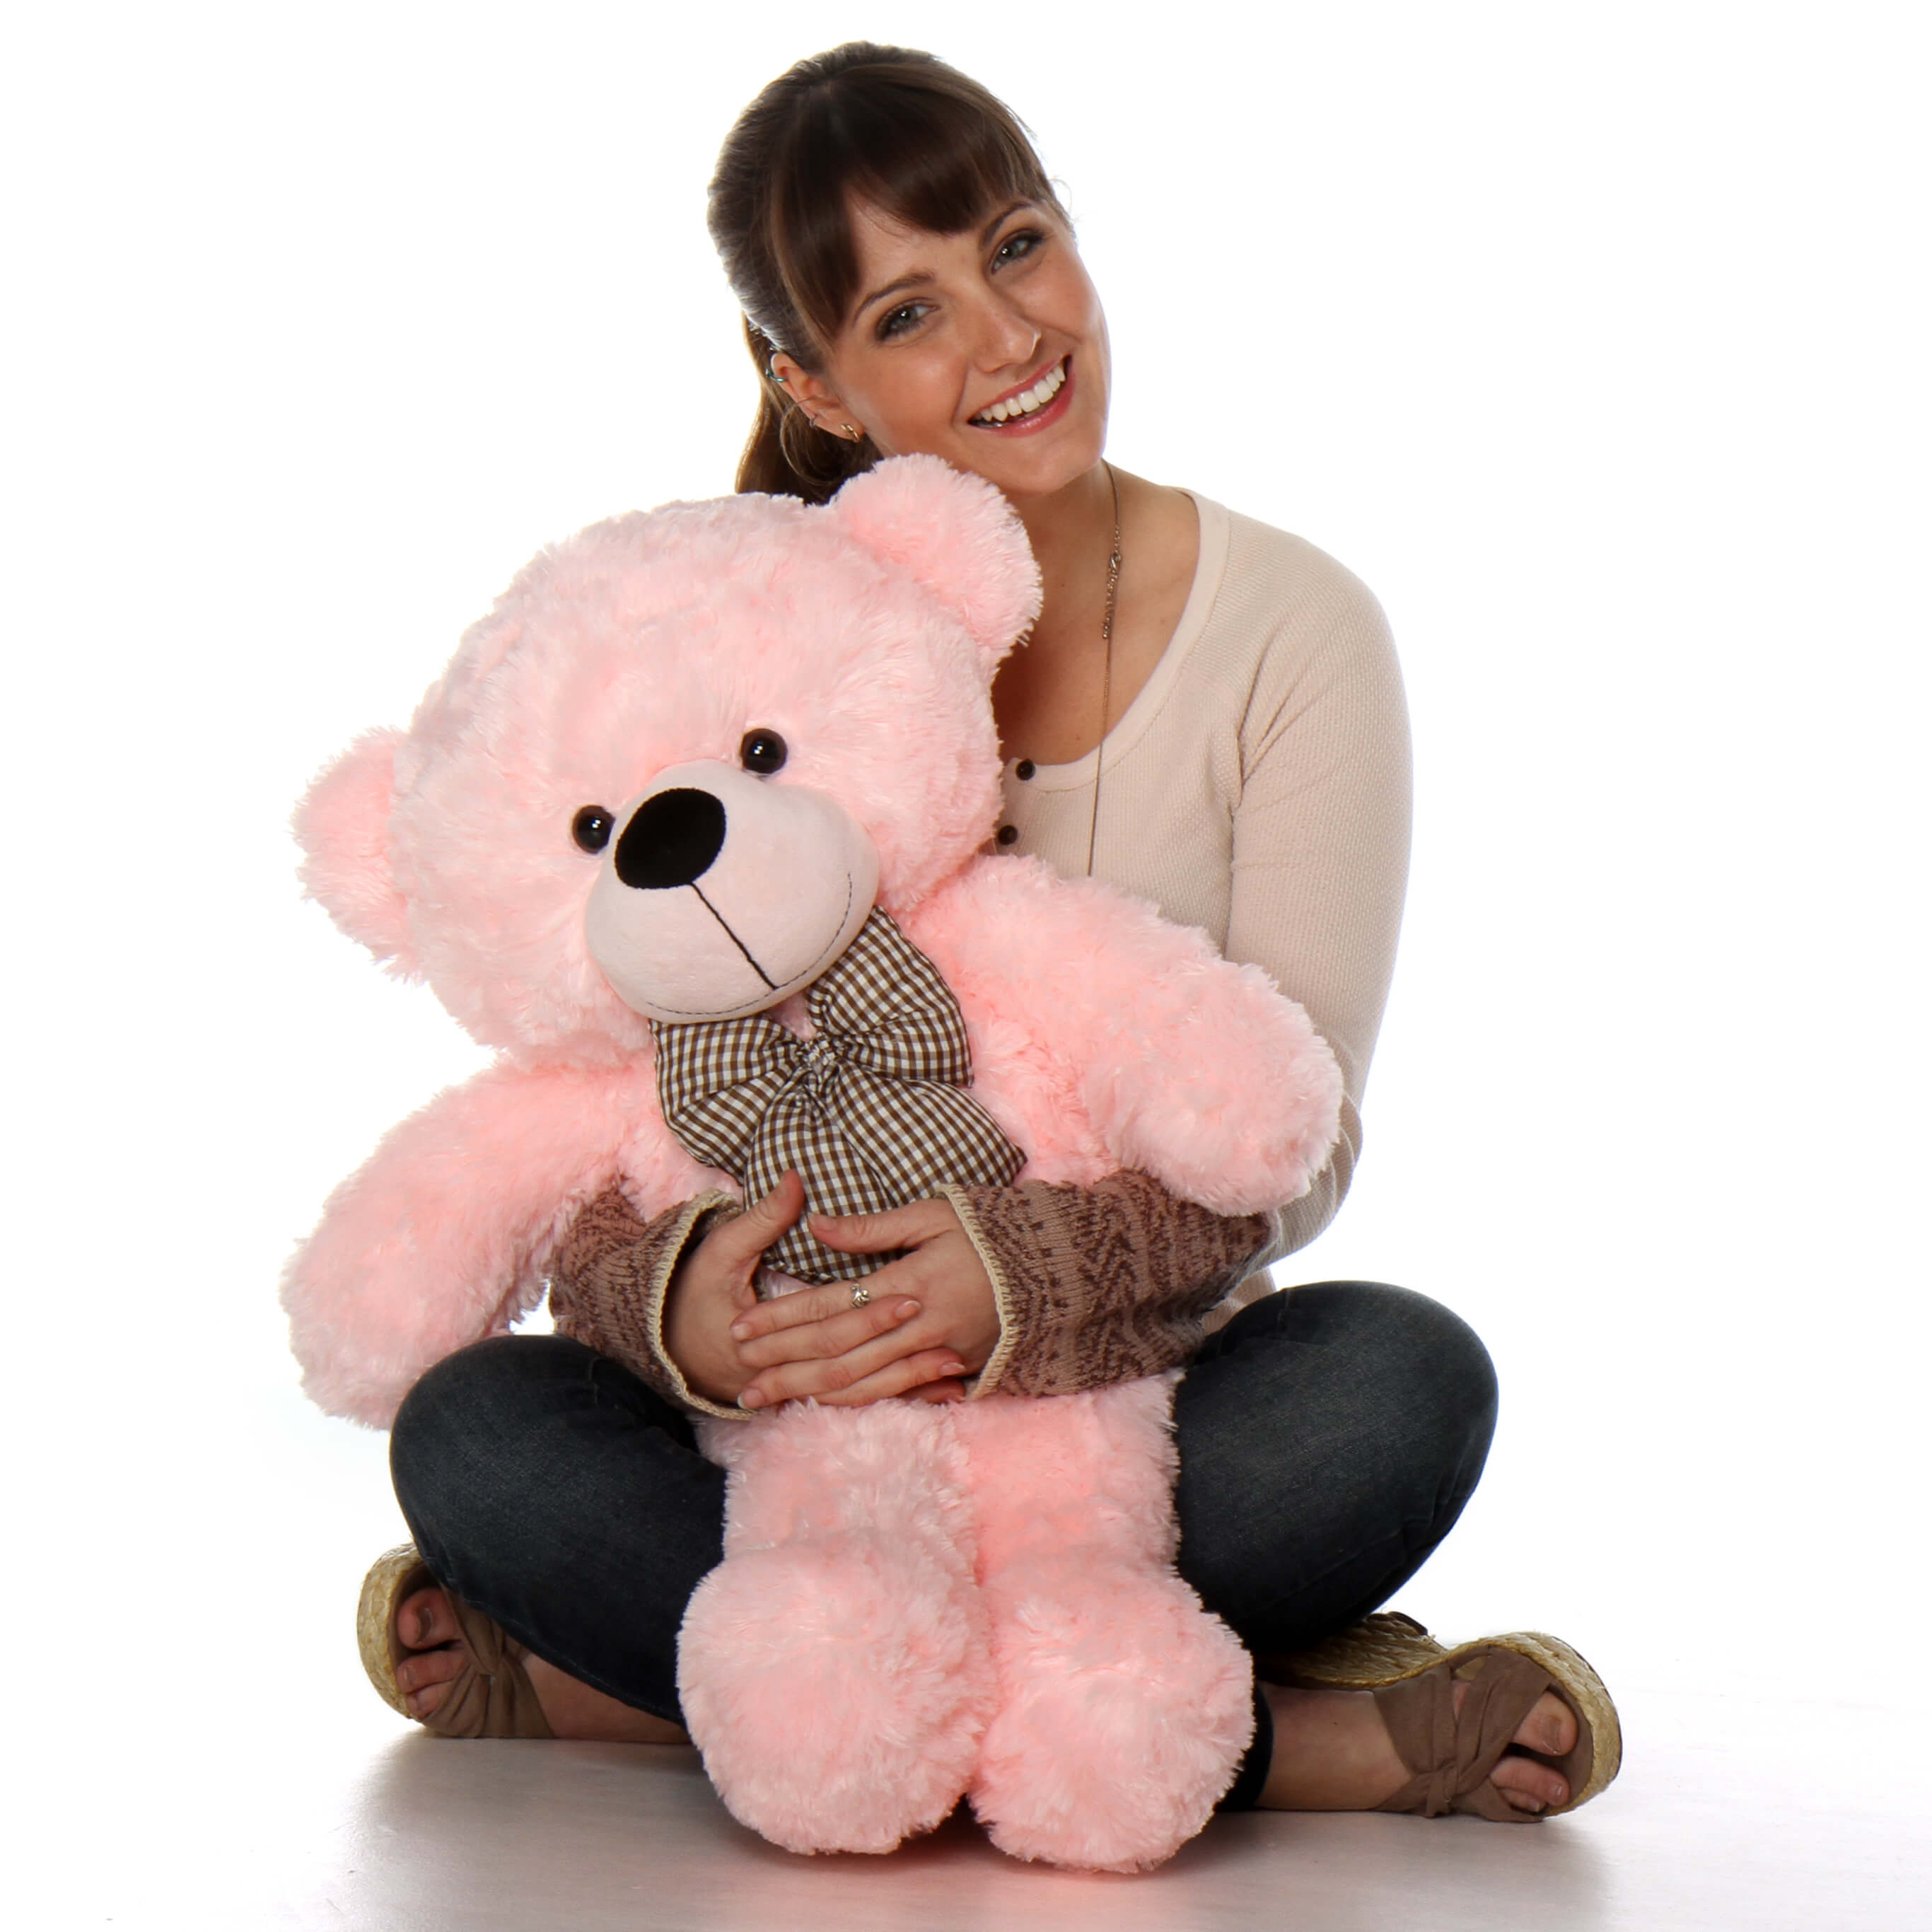 30in-lady-cuddles-huggable-soft-huggable-pink-giant-teddy-plush-bear1.jpg